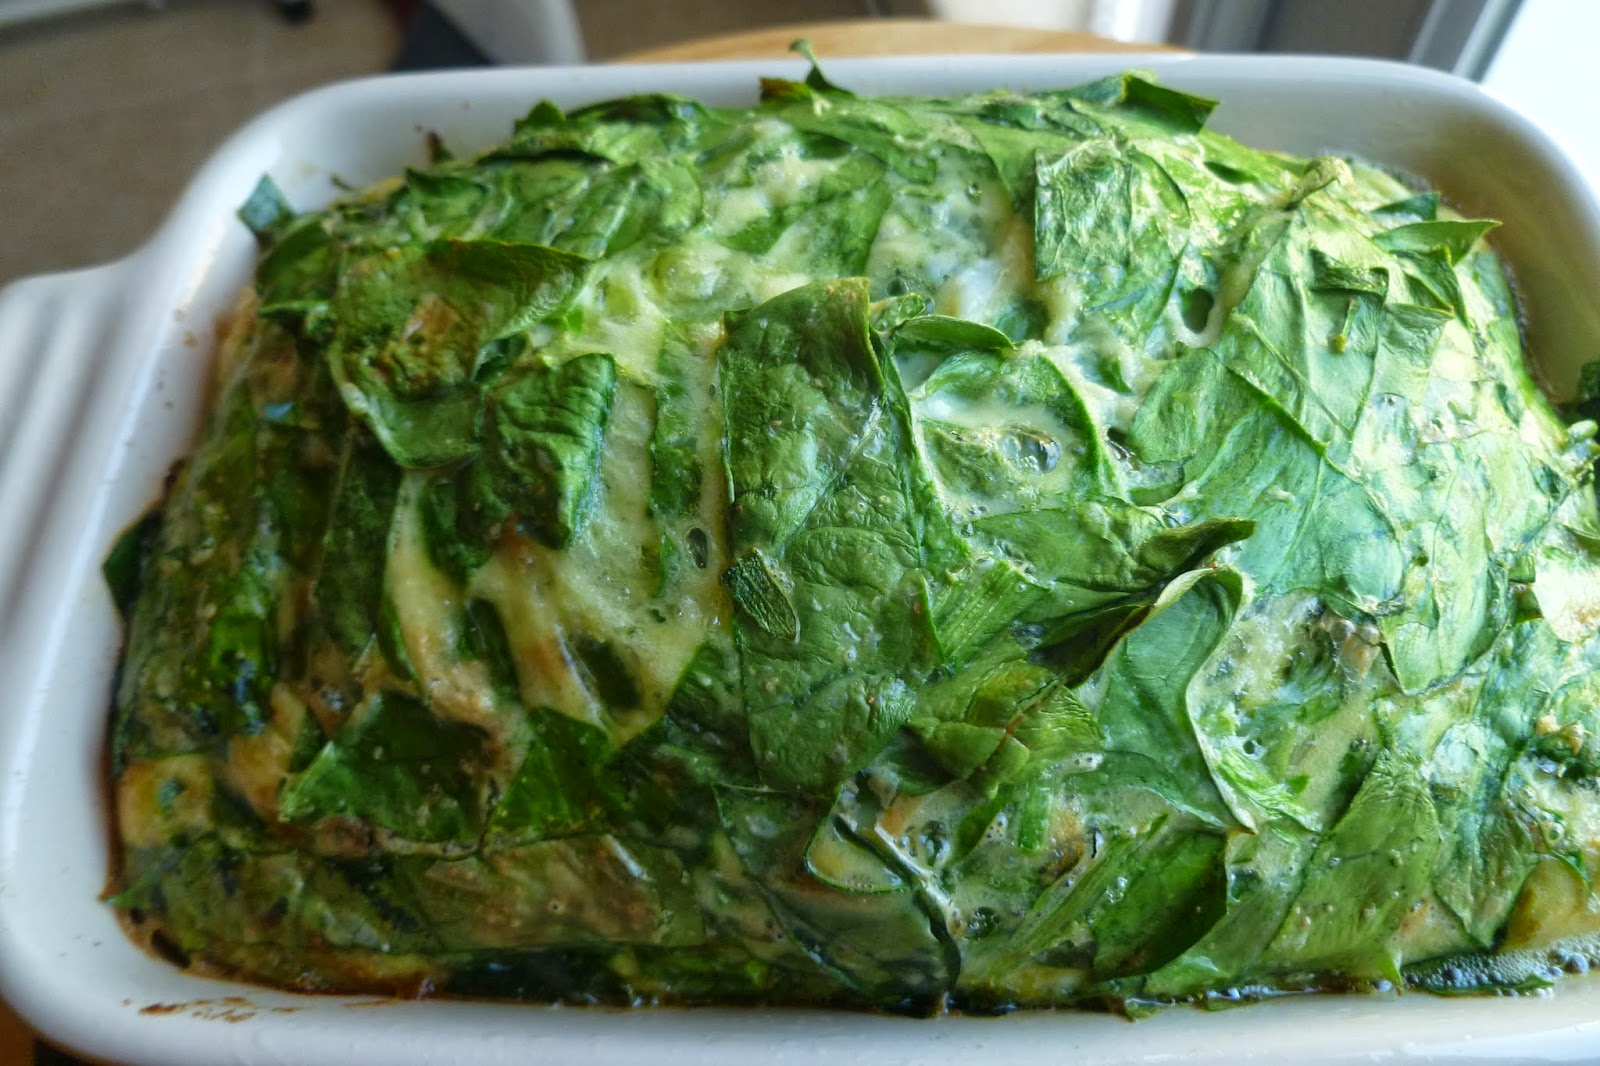 Spinach Quiche - made October 30, 2013 from Paleo Diet Lifestyle